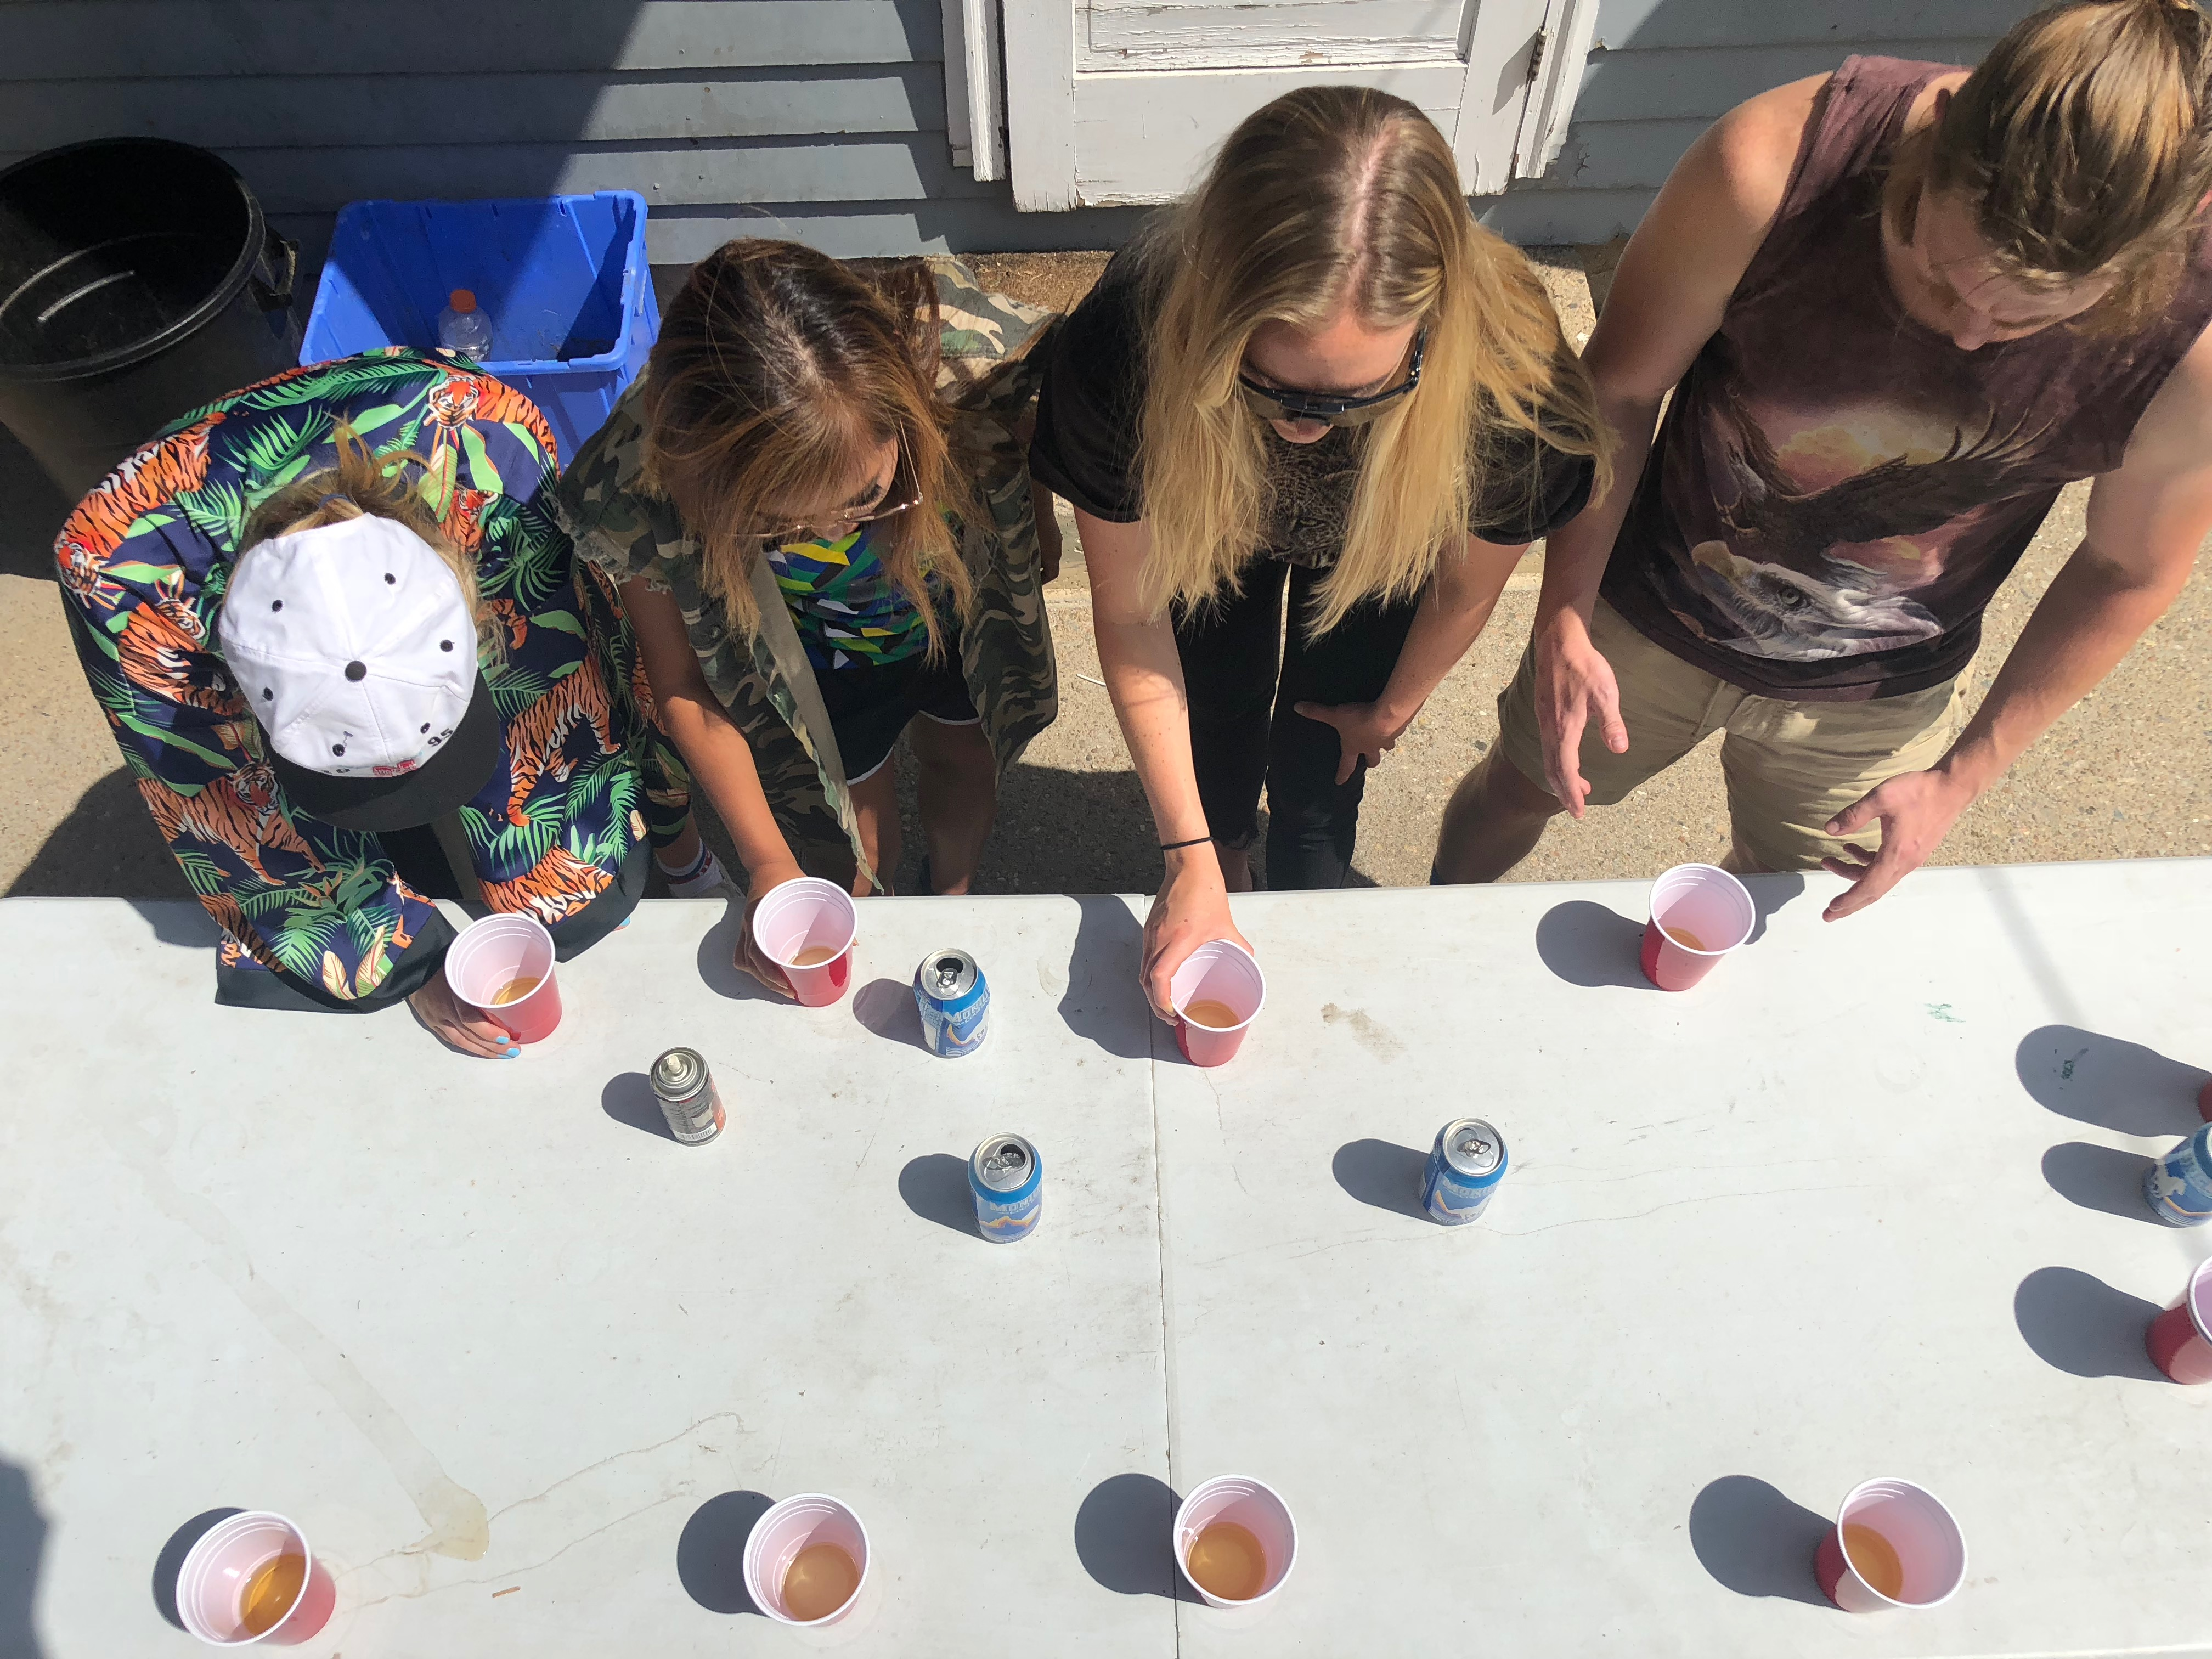 How to play the drinking game flip cup